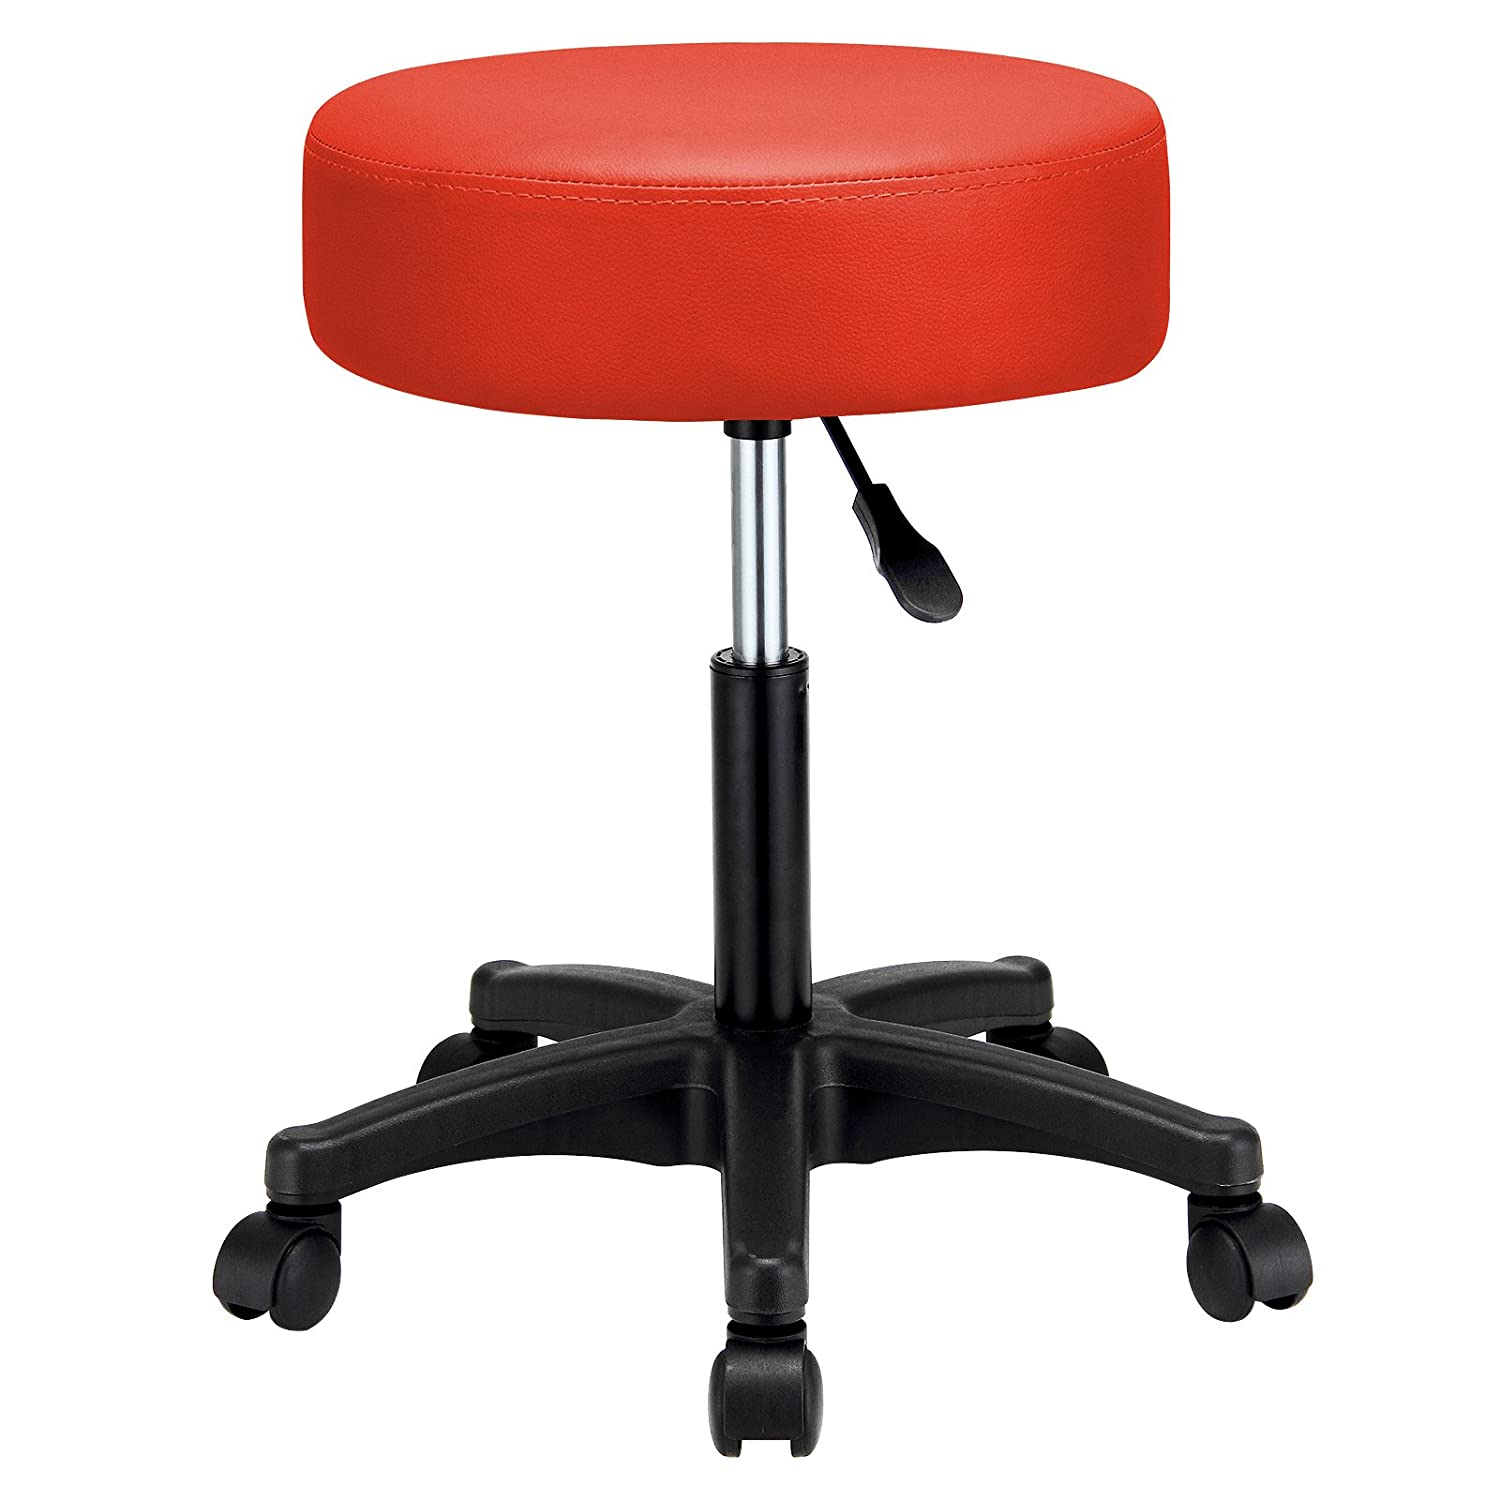 Deuba Swivel Chair Work Stool Beauty Roller Stool Extra Thick